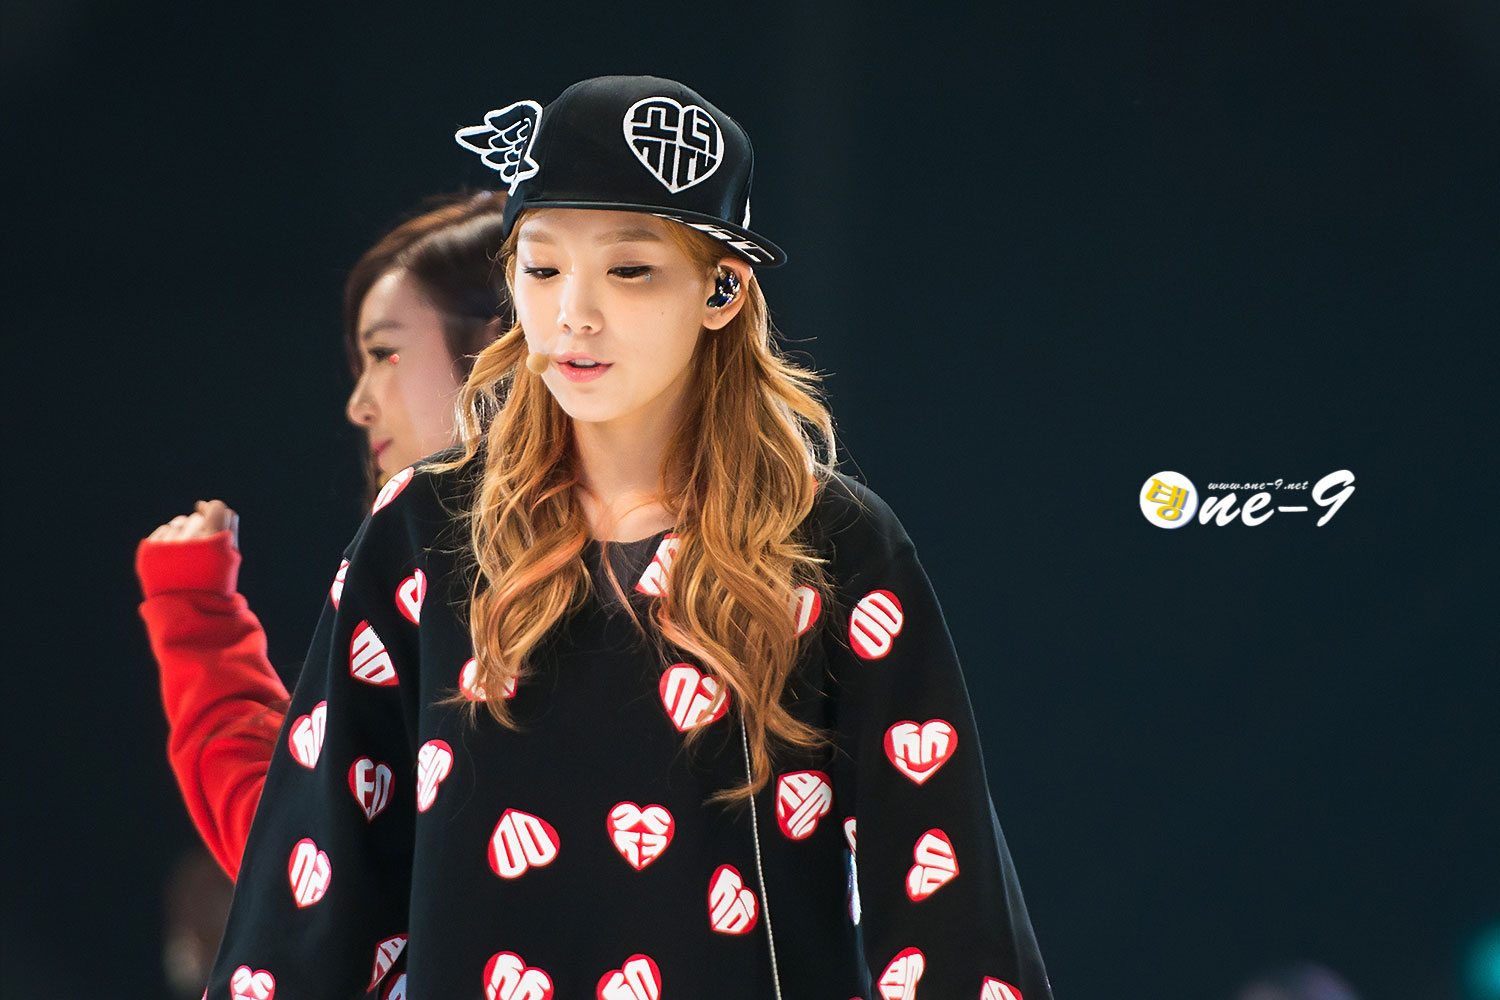 Taeyeon @ Asia Style Collection